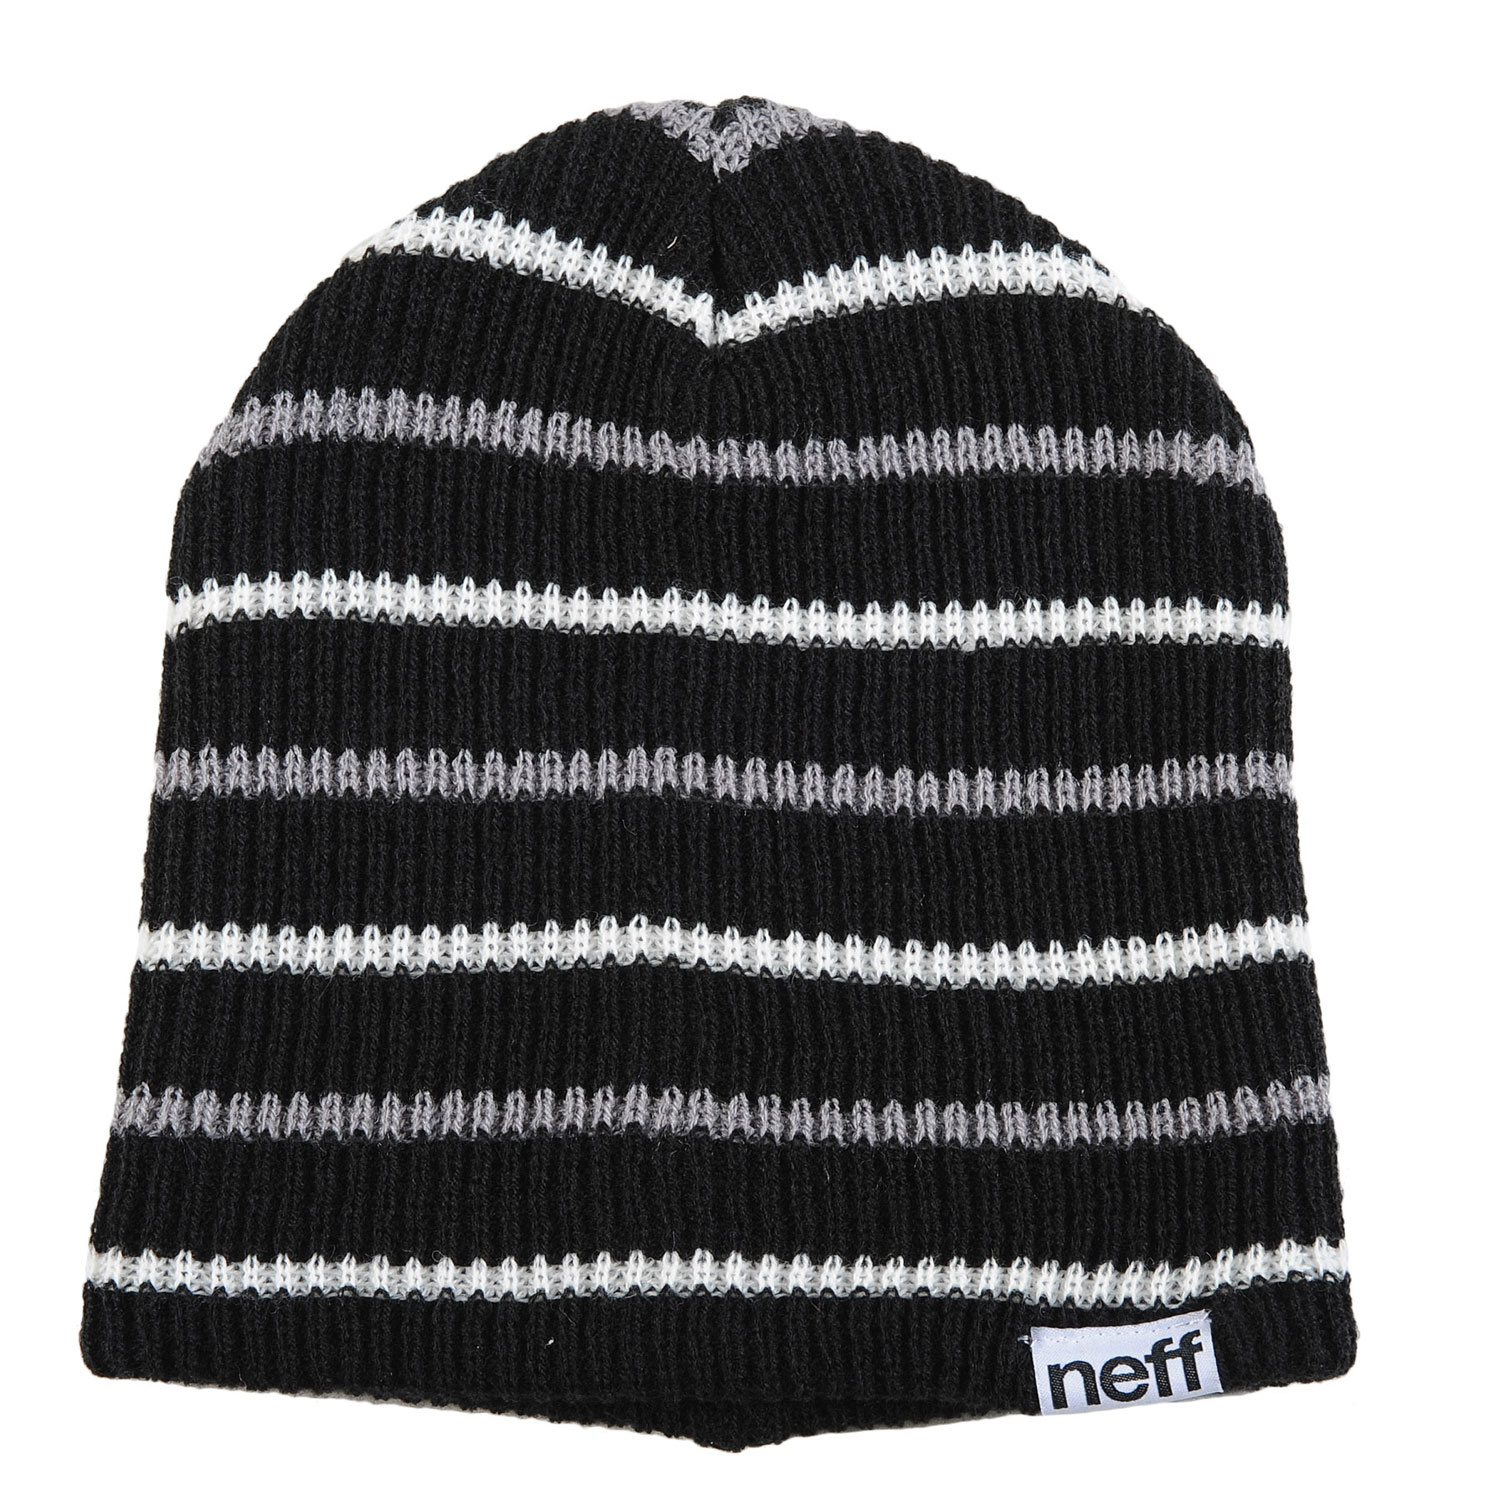 Skateboard 100% AcrylicKey Features of the Neff Daily Multistripe Beanie:  100% Acrylic - $11.95